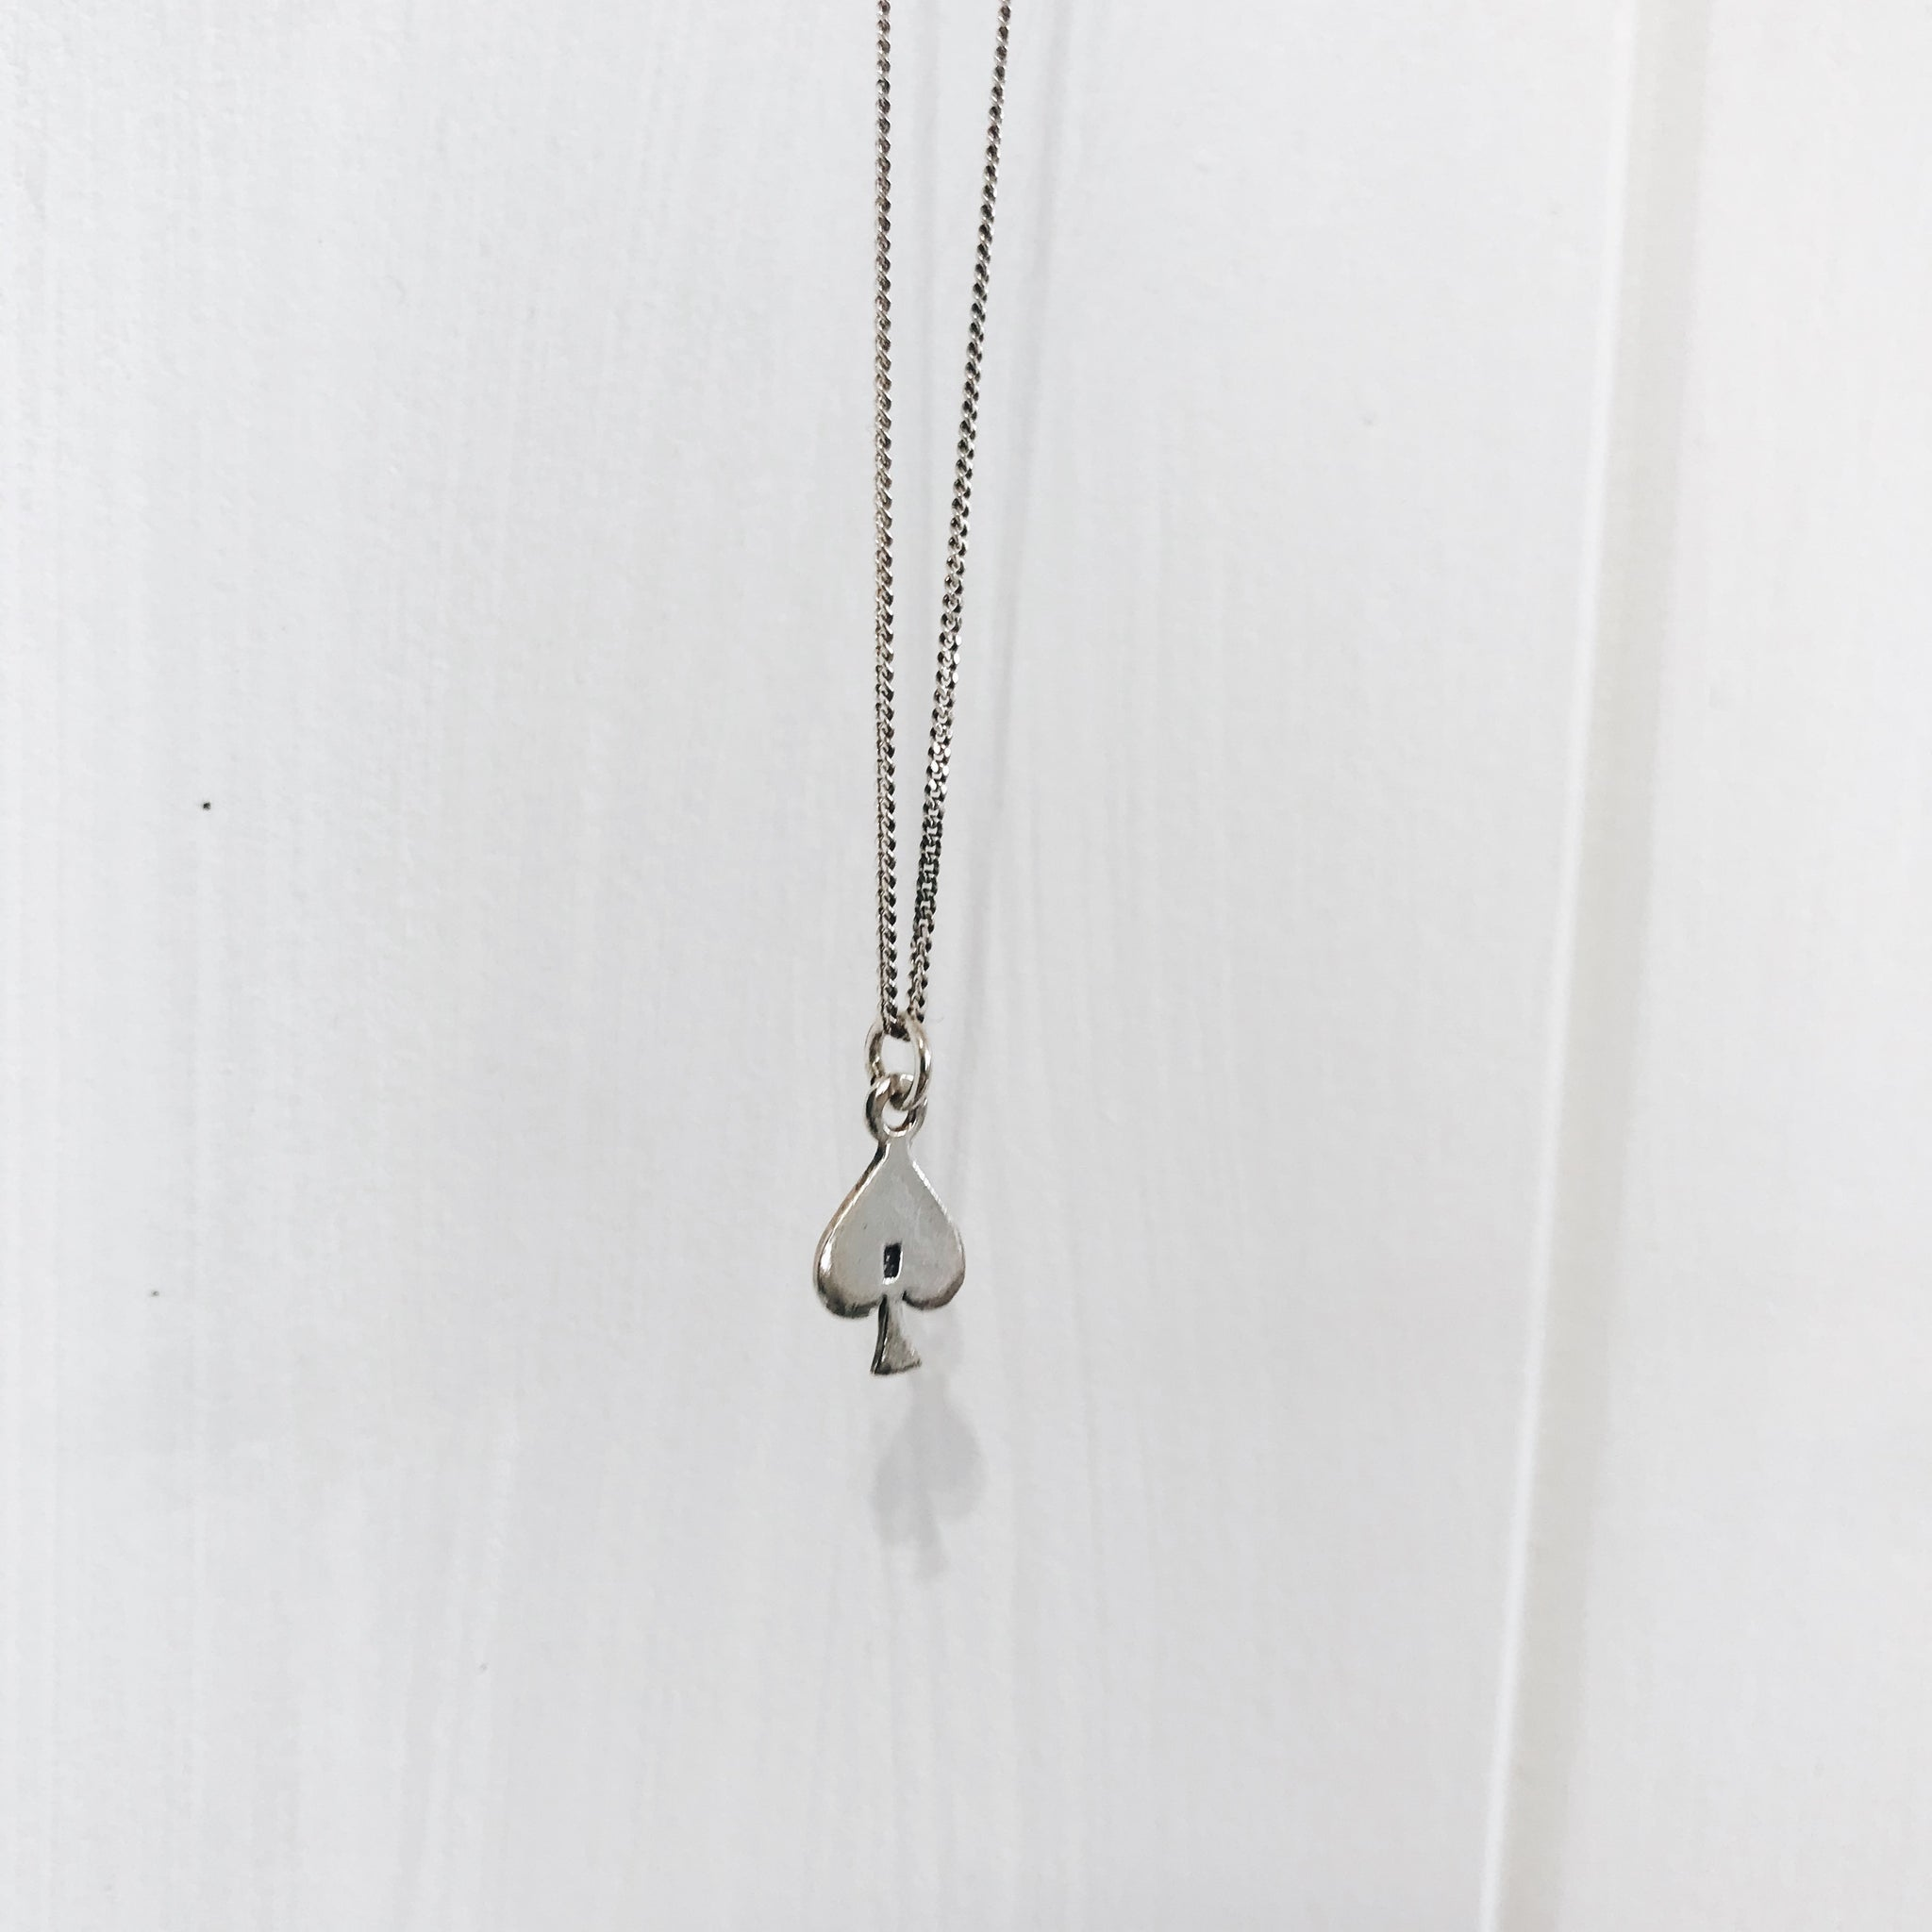 Ace of Spades Stirling Silver Necklace